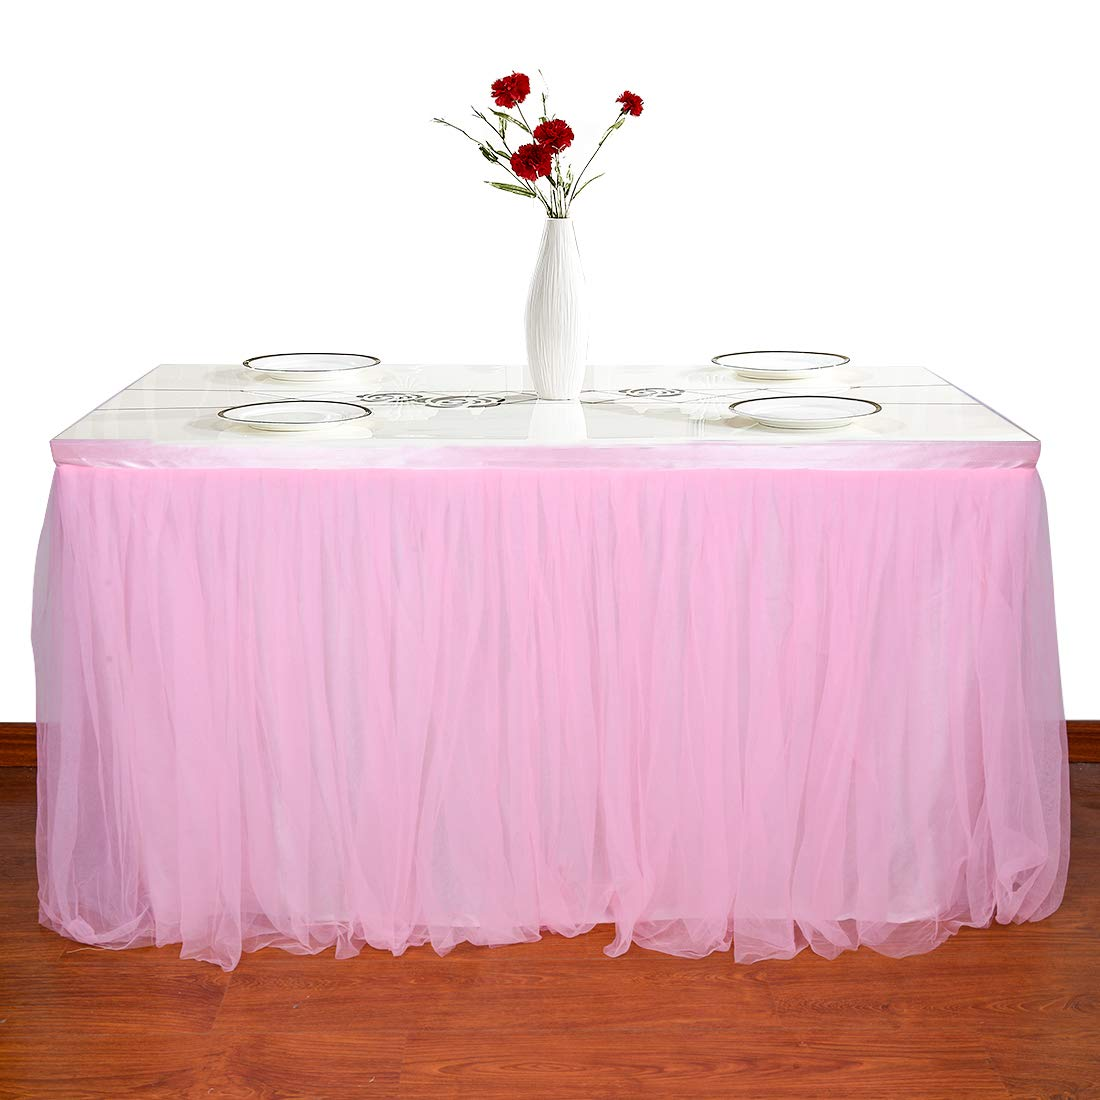 L6 Femery Tulle Table Skirt for Rectangle or Round Table for Party,Wedding,Birthday Party/&Home Decoration,Table Skirting ft H 30in, Pink